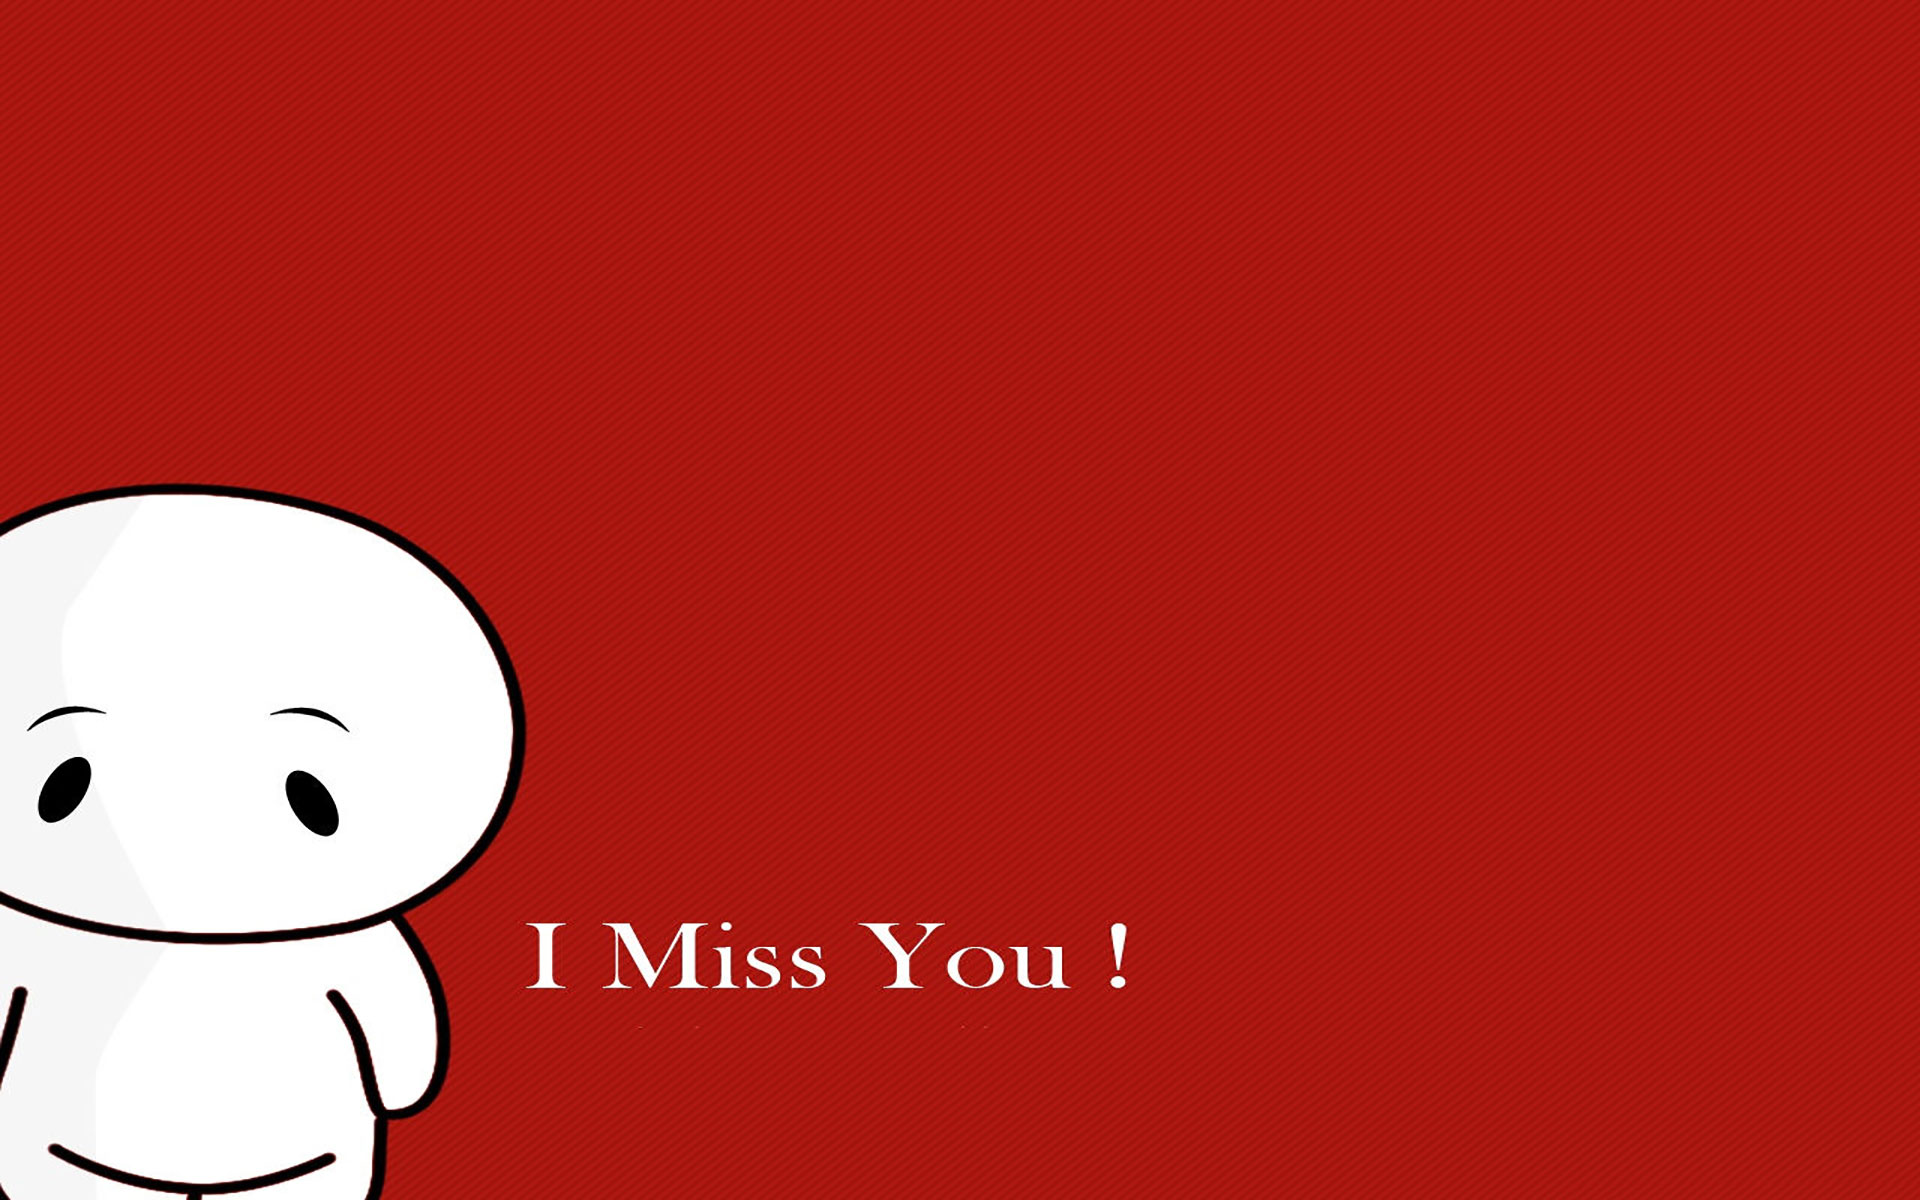 Hd I Miss You Wallpaper For Him Or Her Romantic Wallpapers Chobirdokan